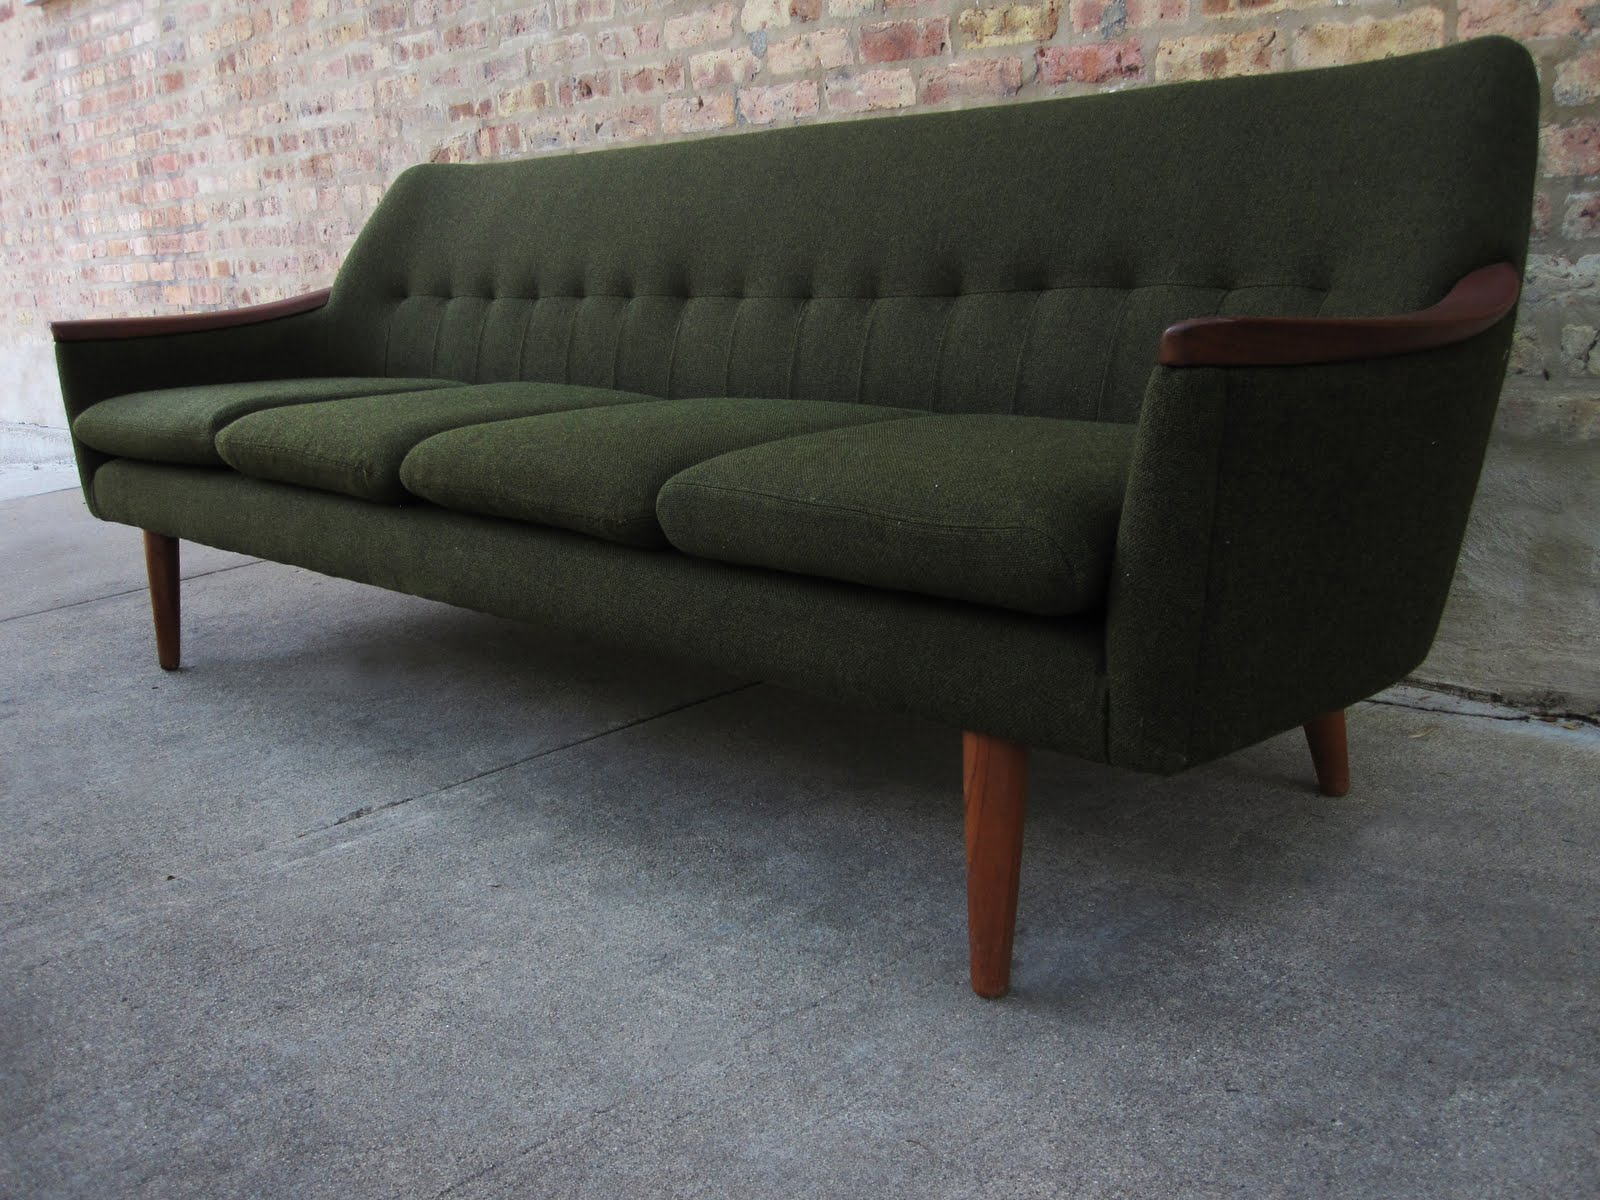 circa midcentury 39 danish modern 39 teak sofa. Black Bedroom Furniture Sets. Home Design Ideas